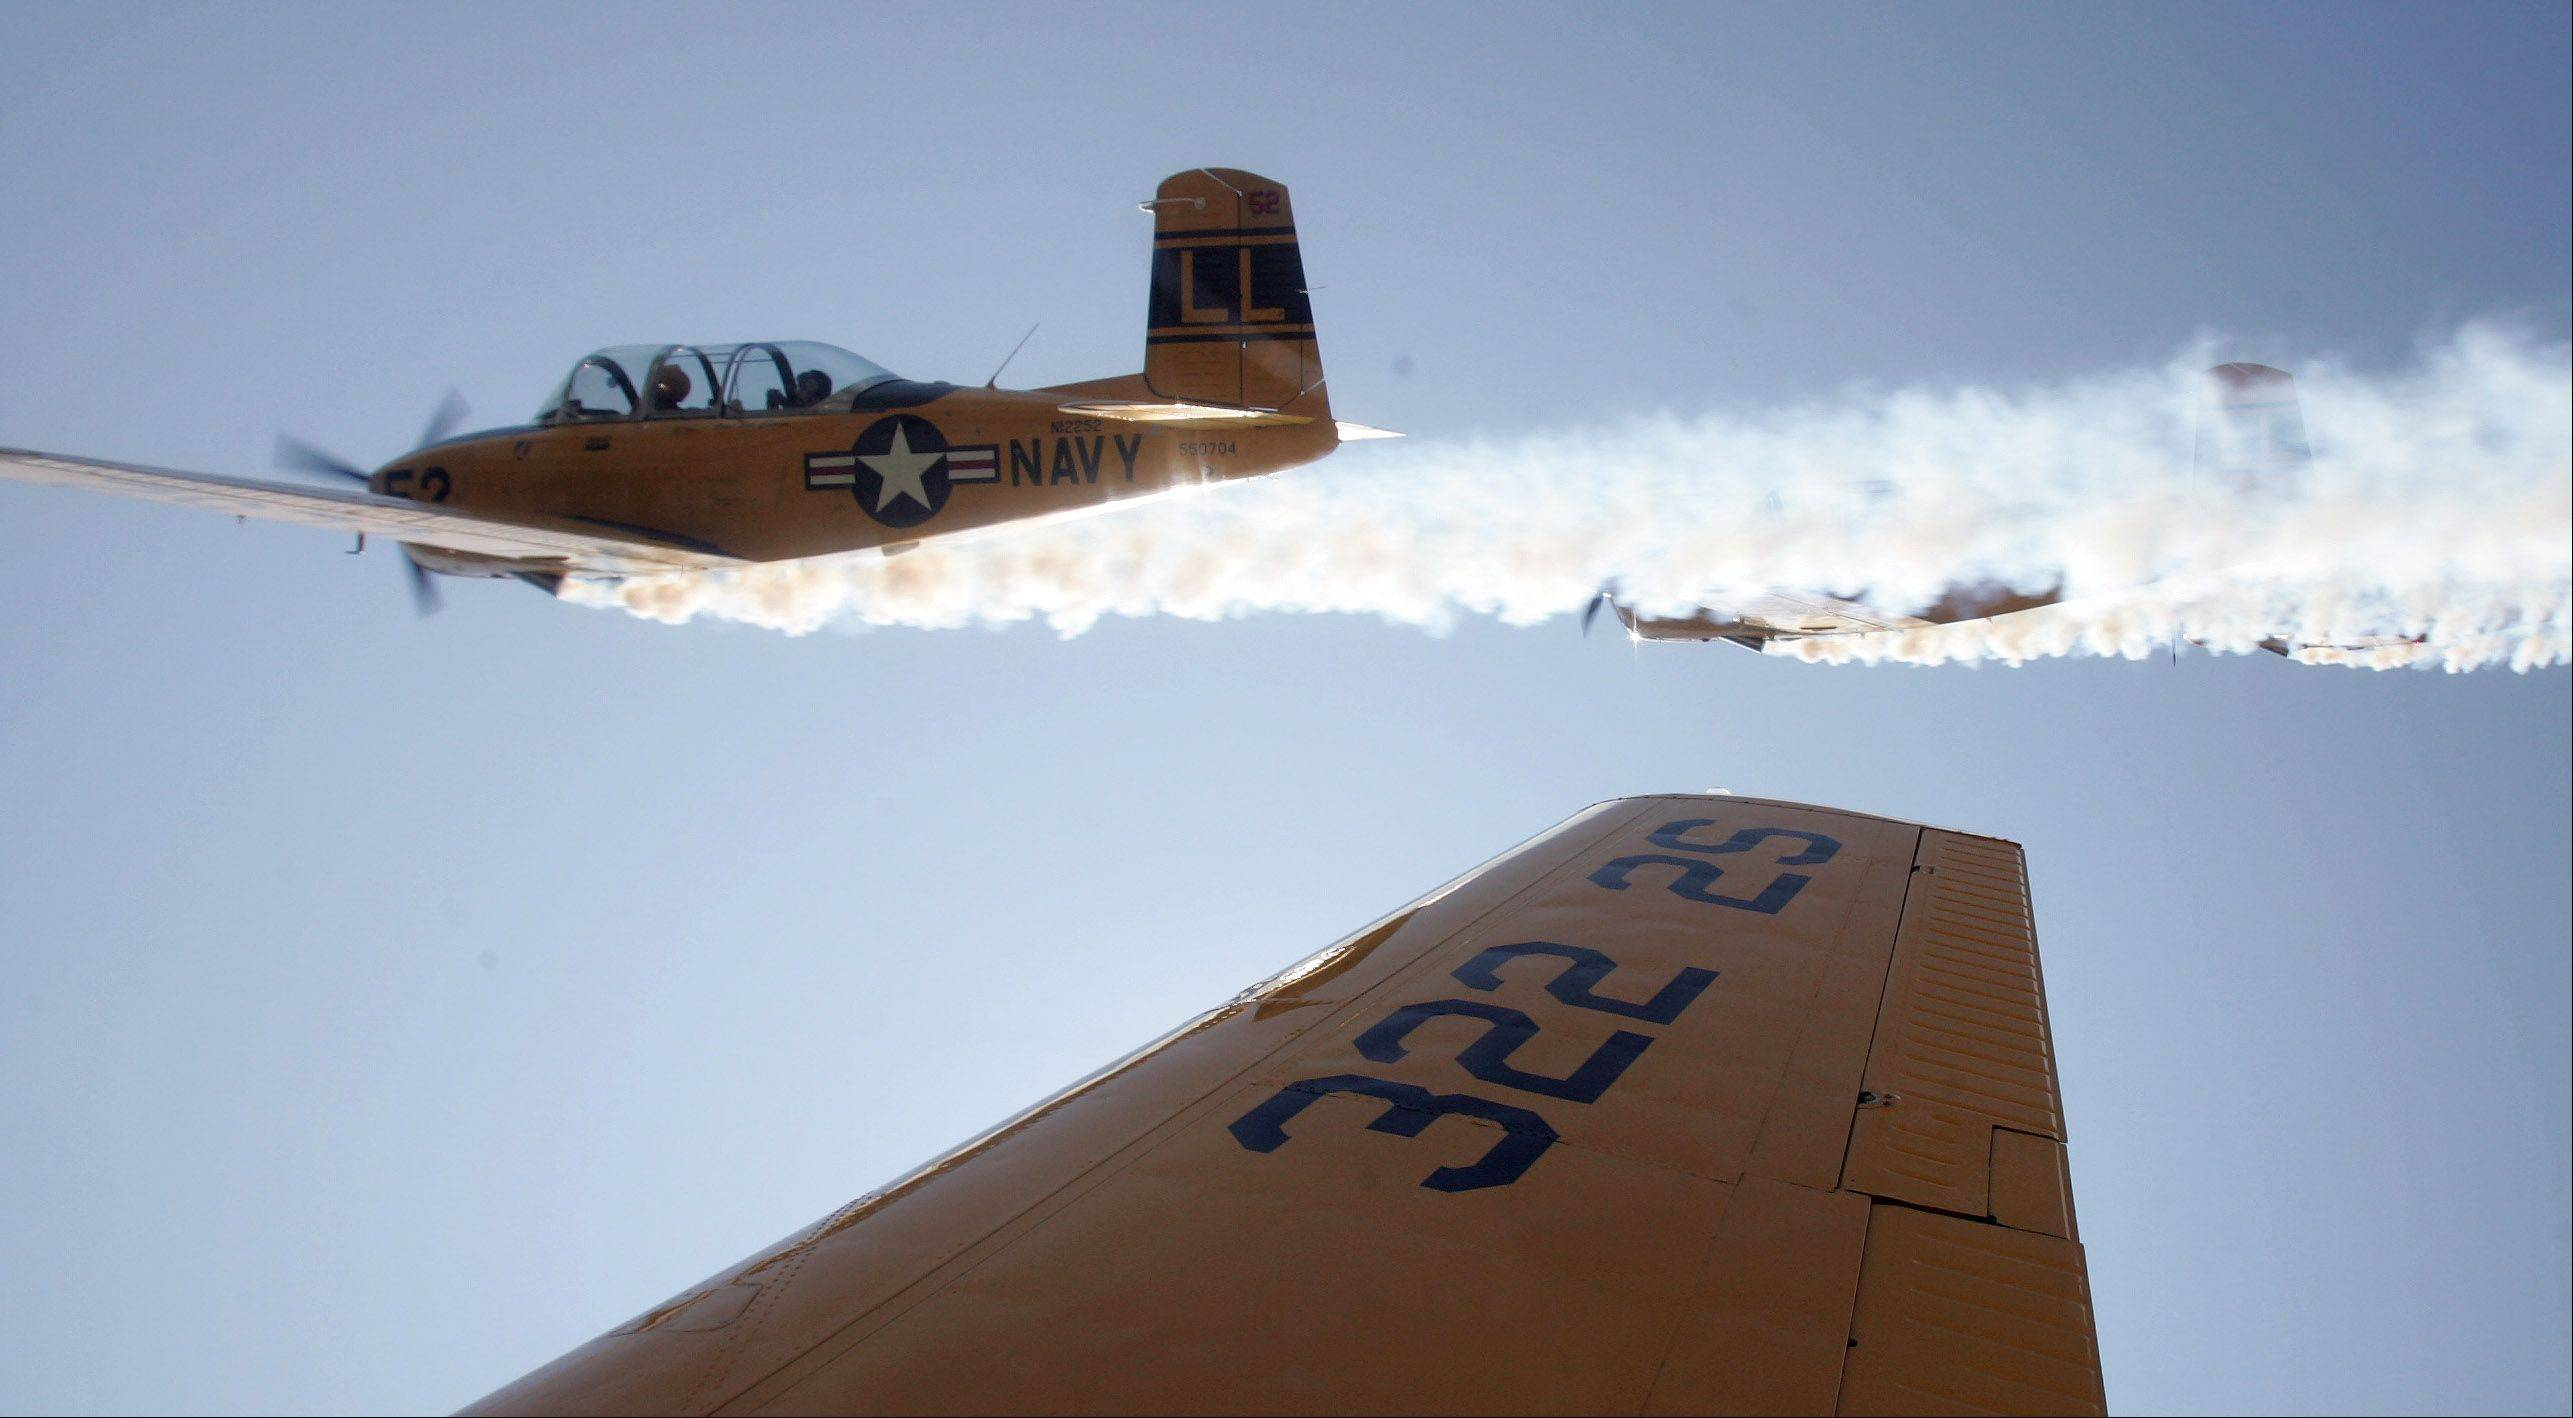 The Lima Lima Flight Team will be part of the 55th annual Chicago Air and Water Show this weekend.